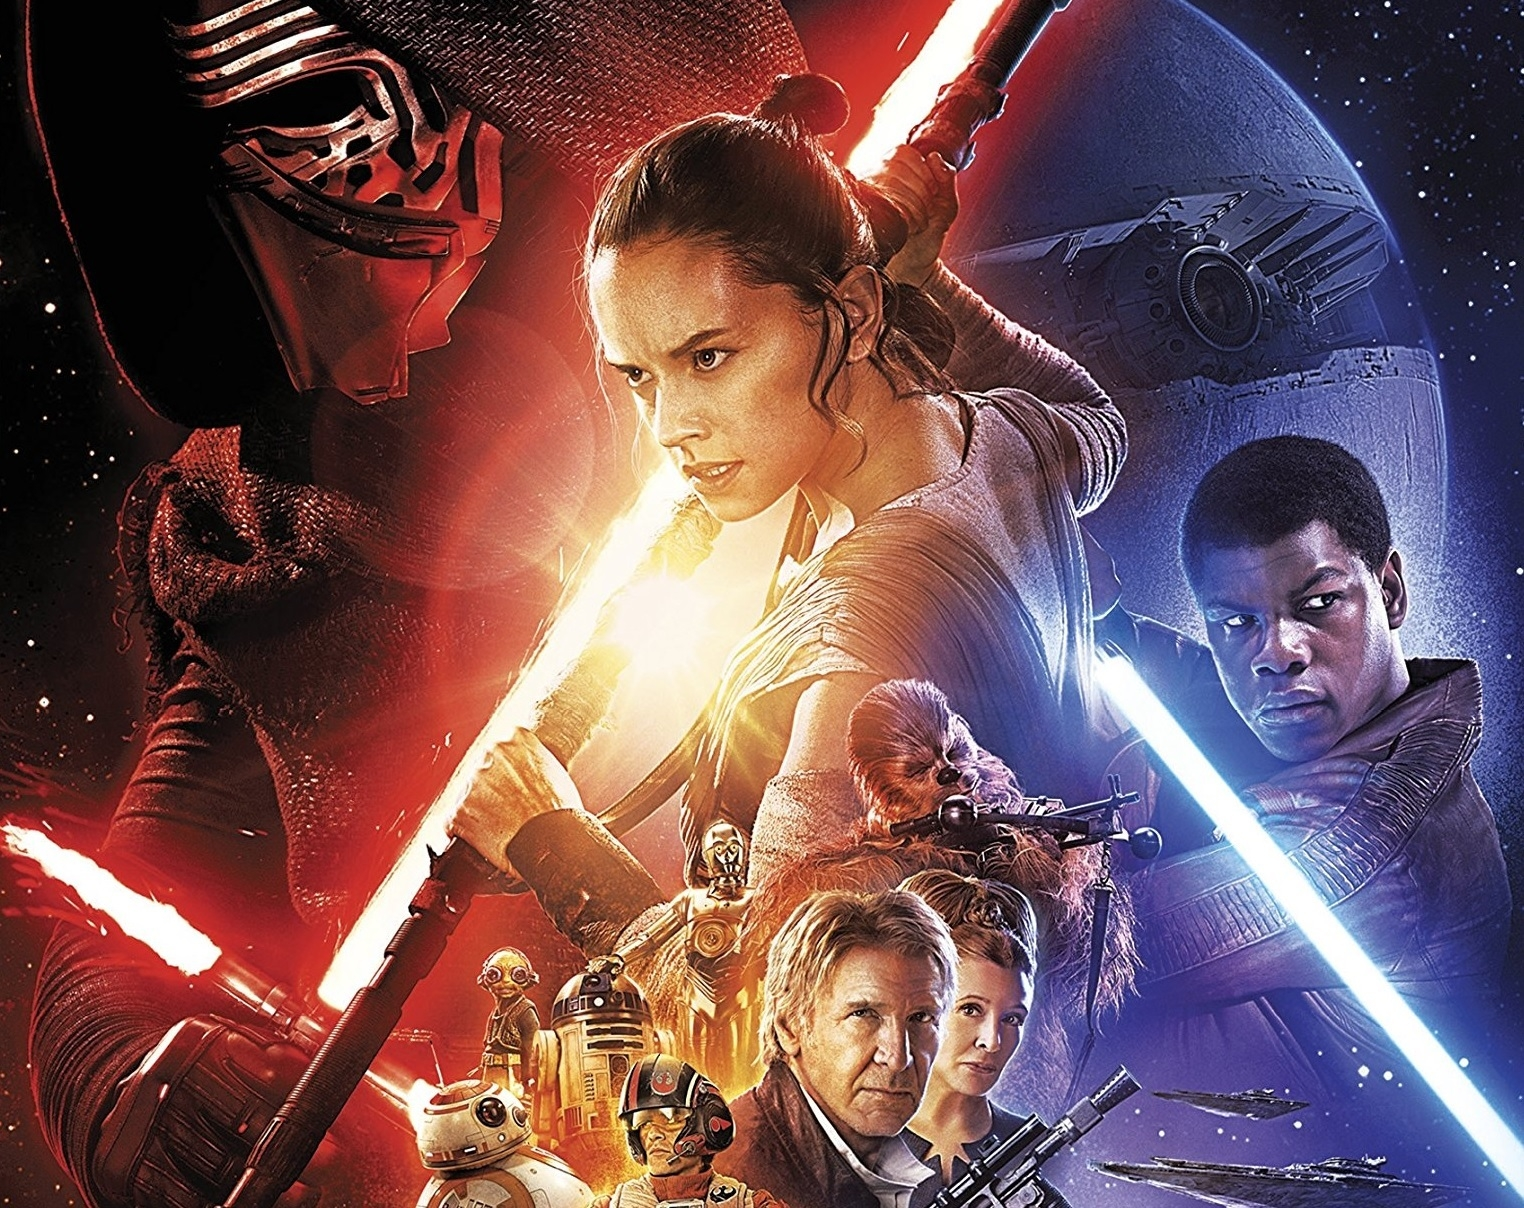 force-awakens-book-cover.jpg